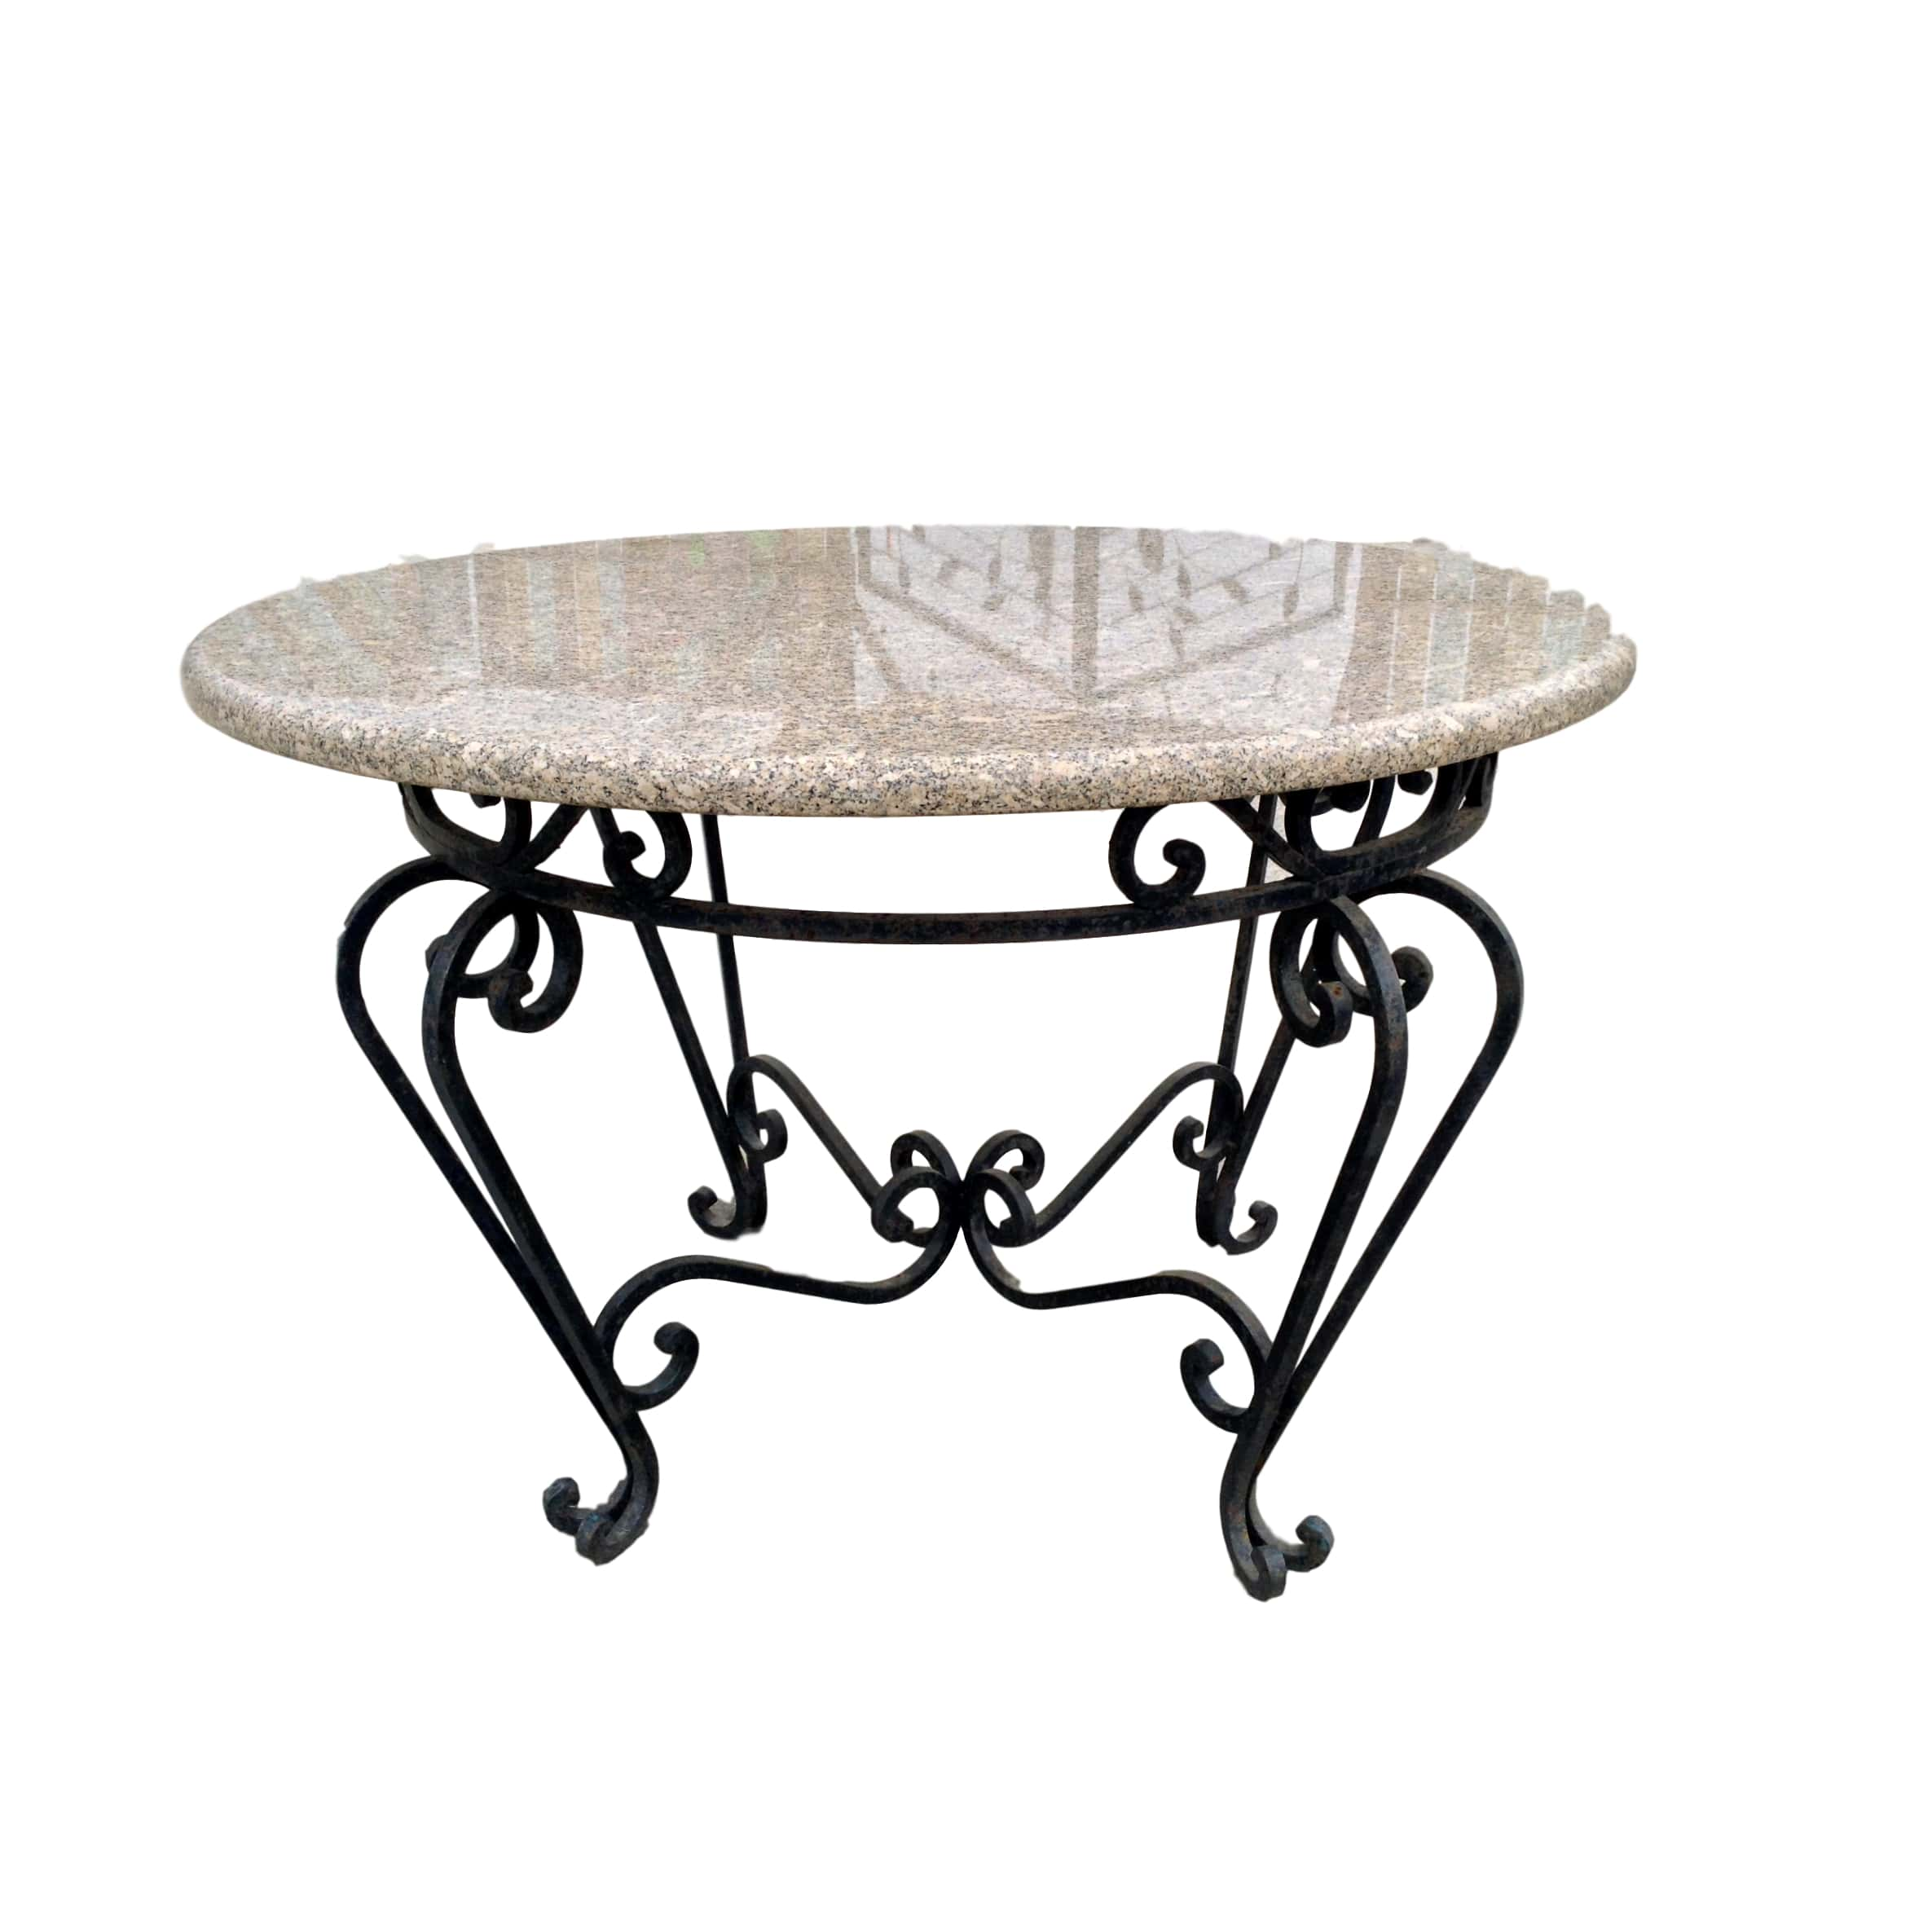 Granite Top Table W/ 4 Chairs